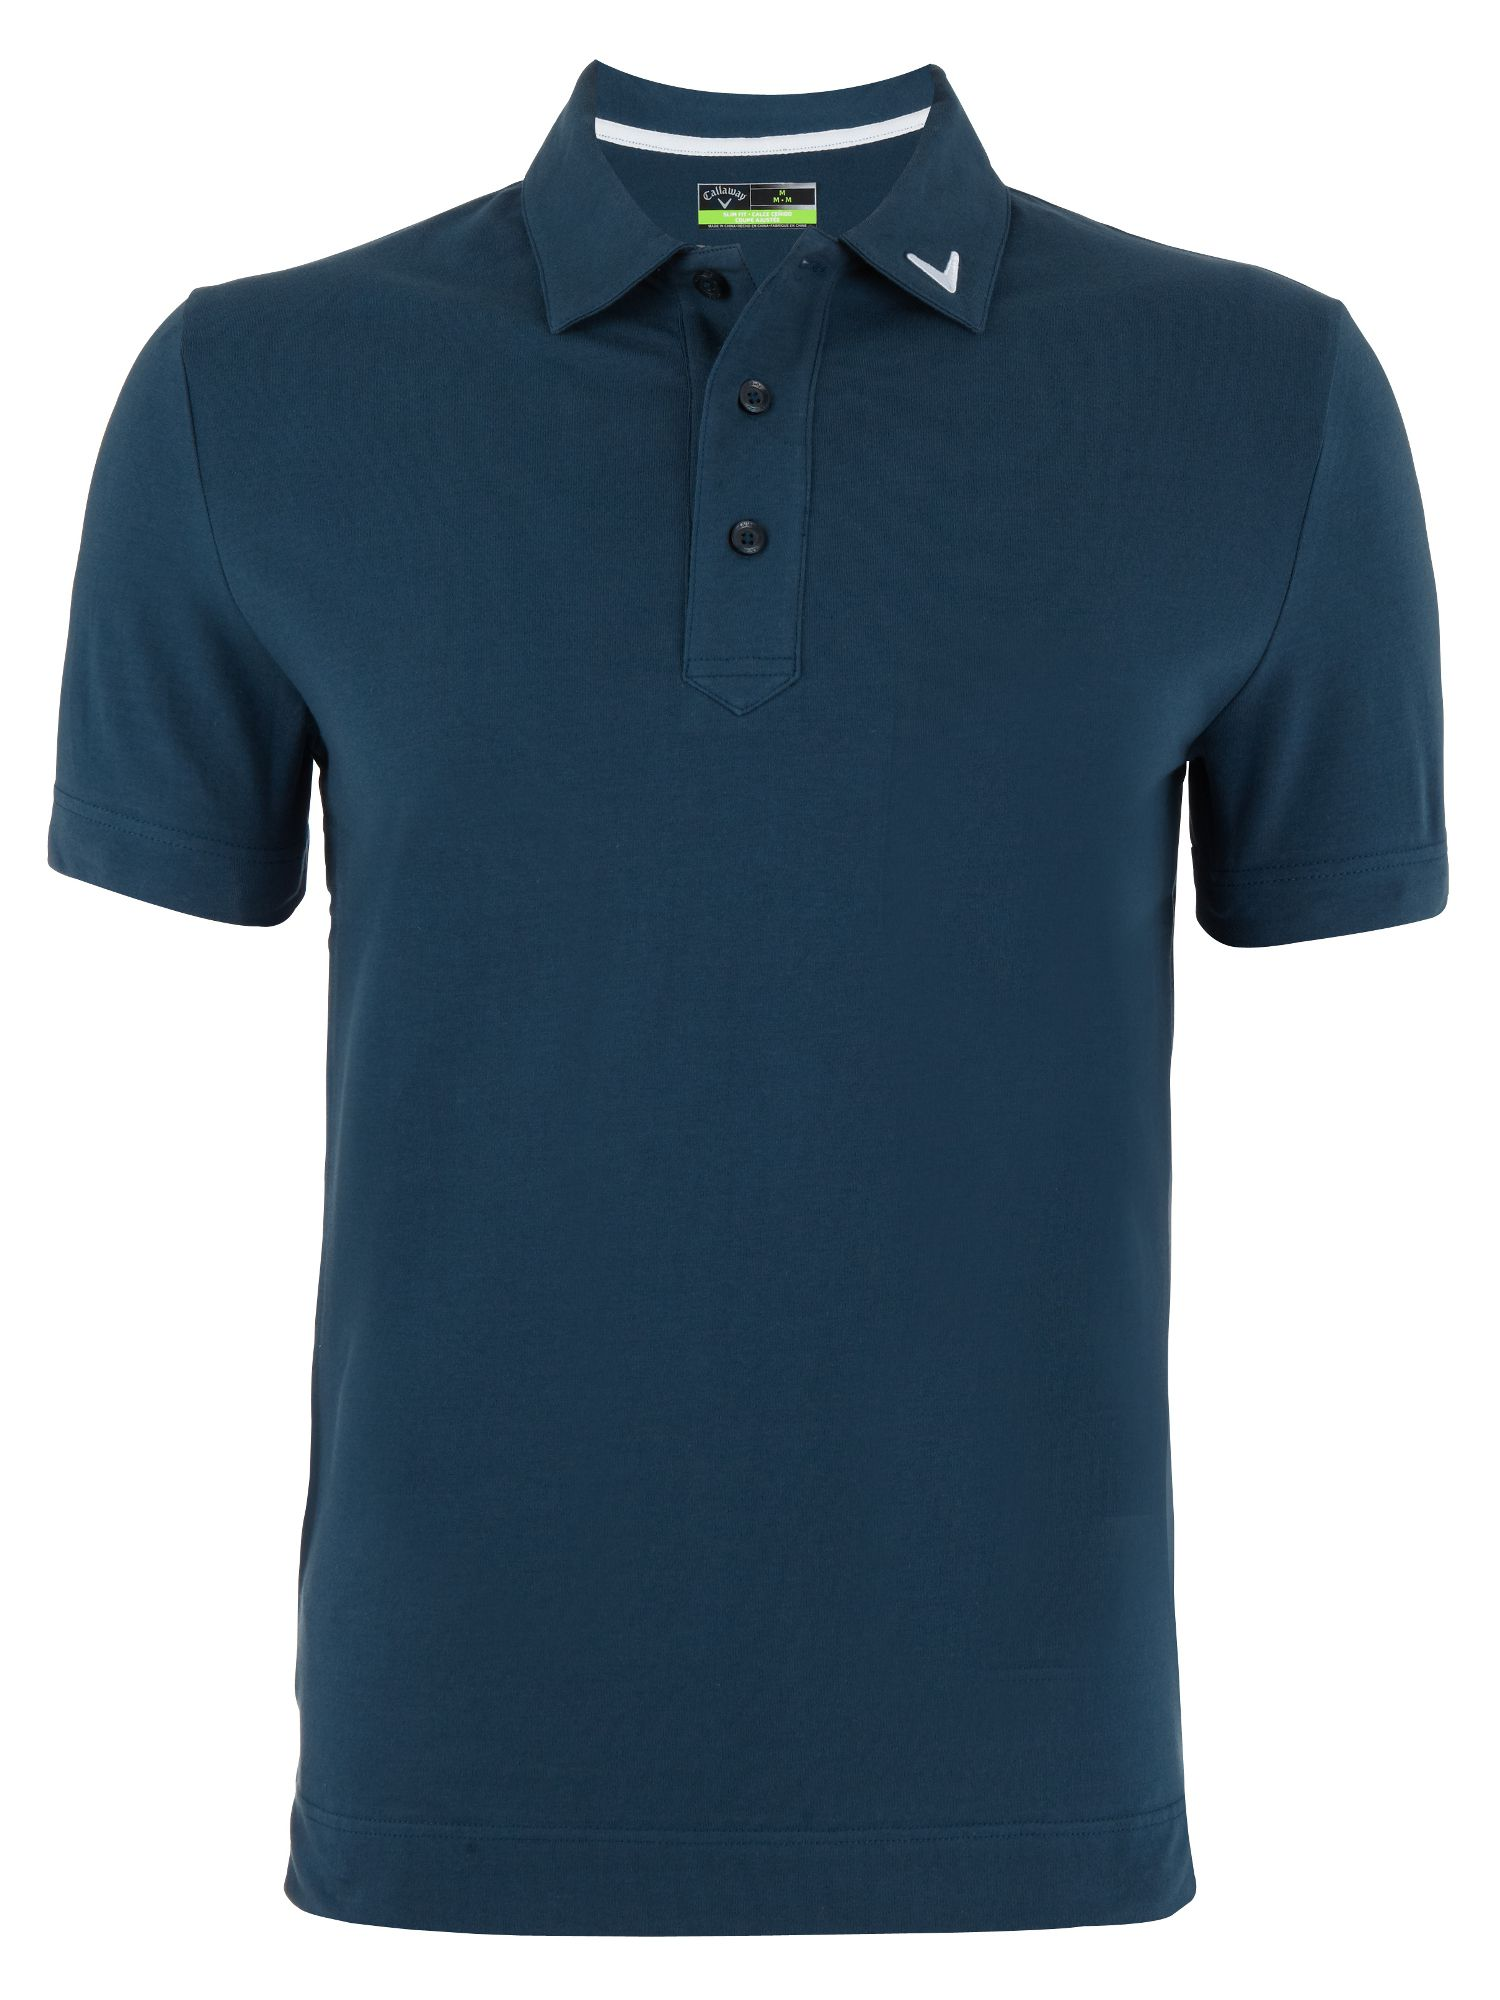 Cotton stretch polo shirt